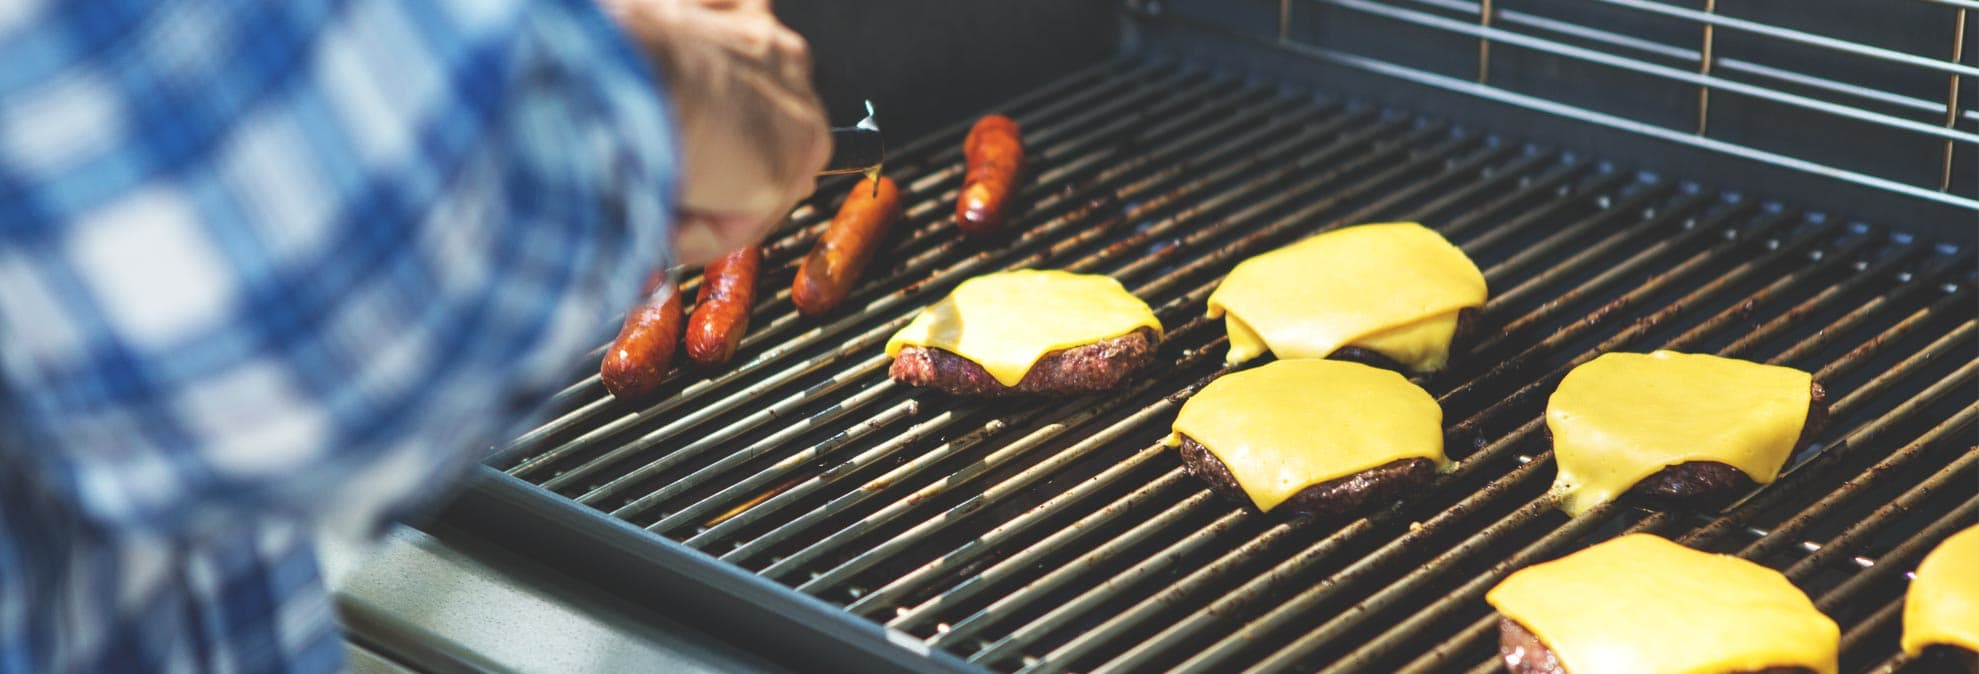 gas grills to look for at end of season grill sales consumer reports